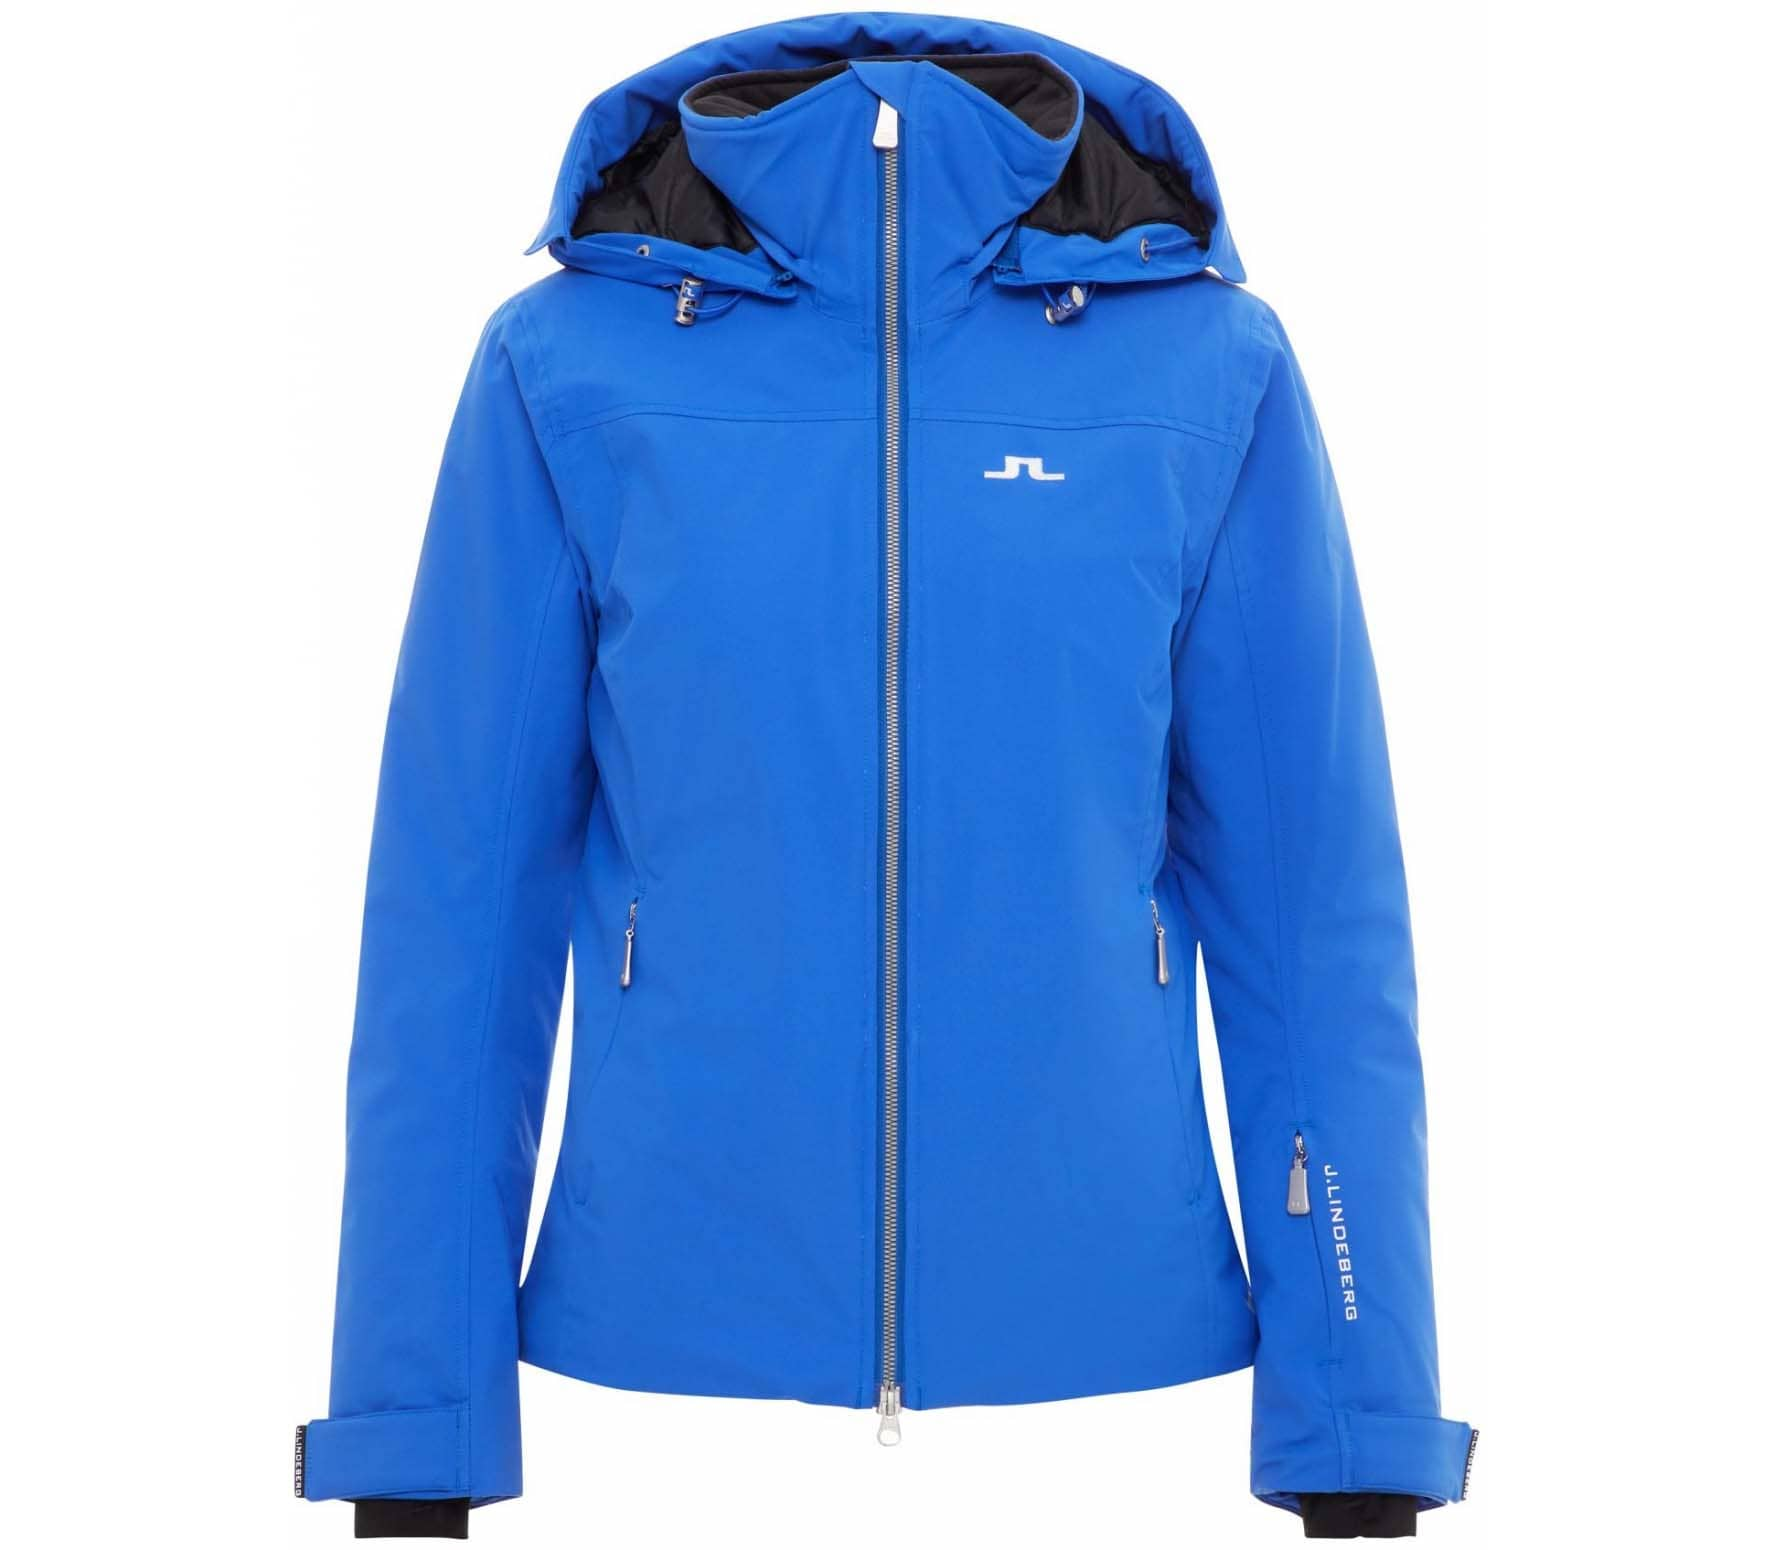 Truuli 2L Women Ski Jacket